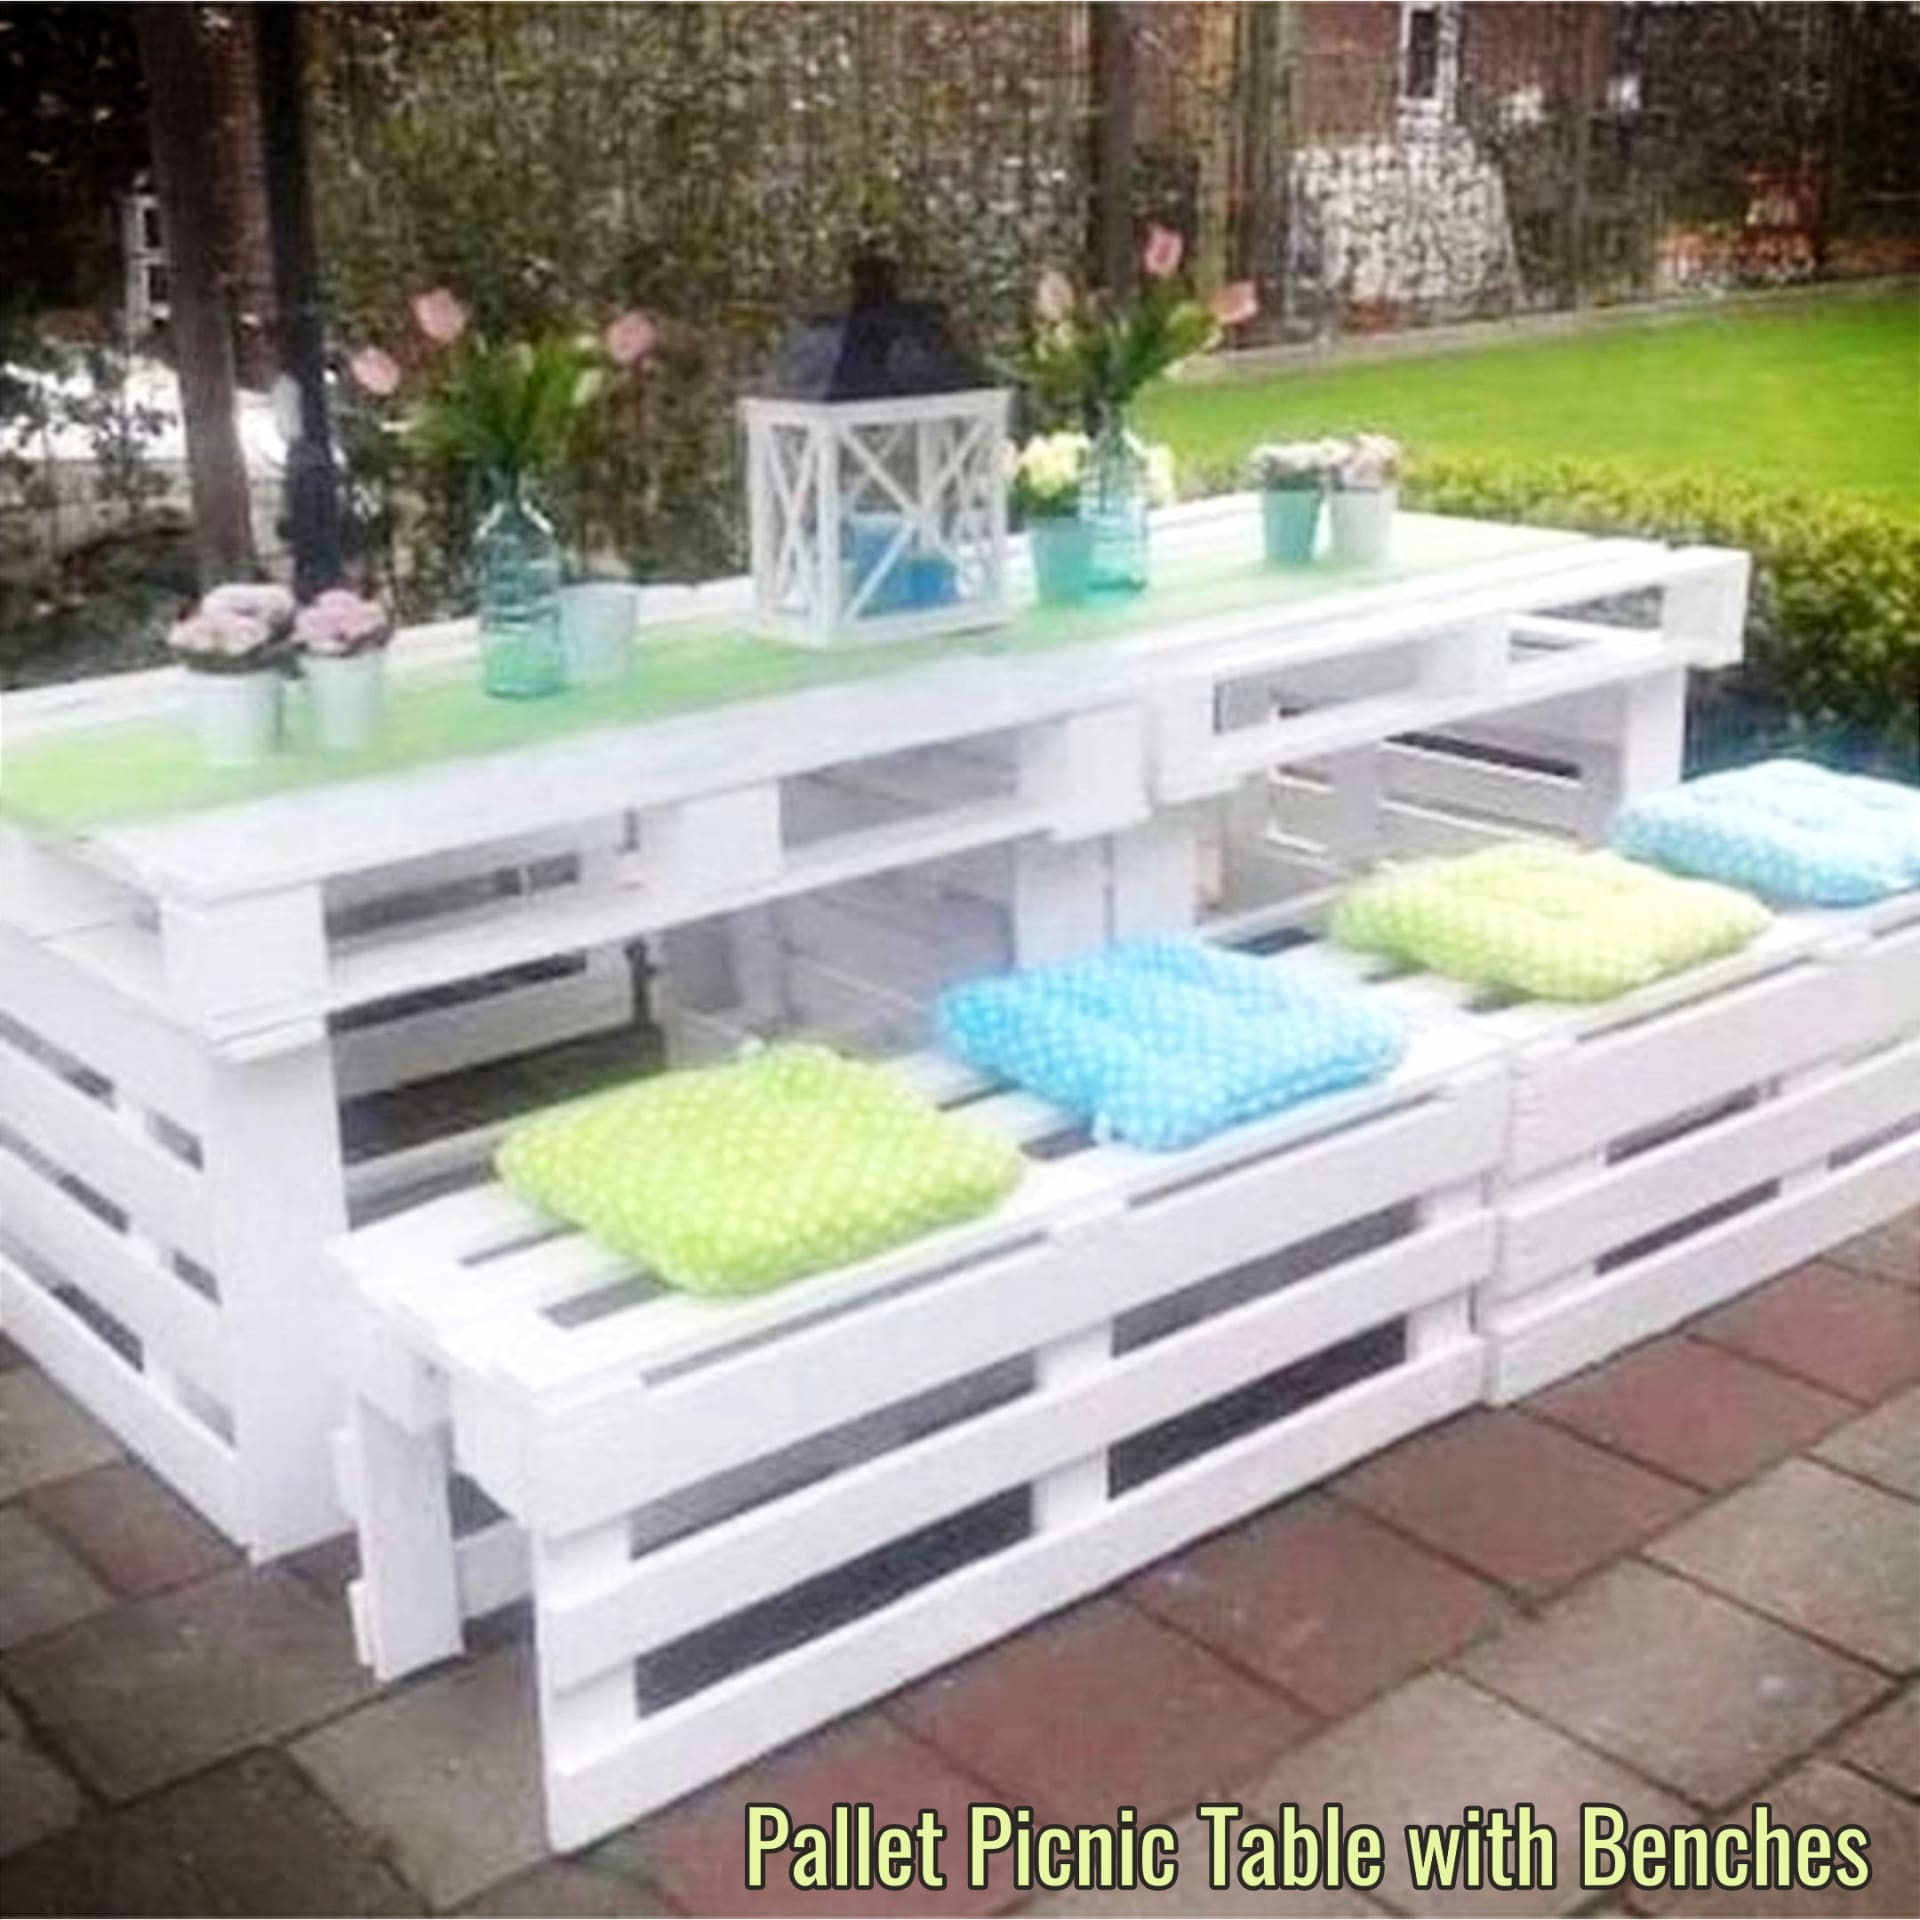 Pallet Projects - Easy DIY outdoor pallet furniture and pallet projects to make or sell - VERY clever pallet projects!  Pallet picnic table with benches all made from old pallet wood